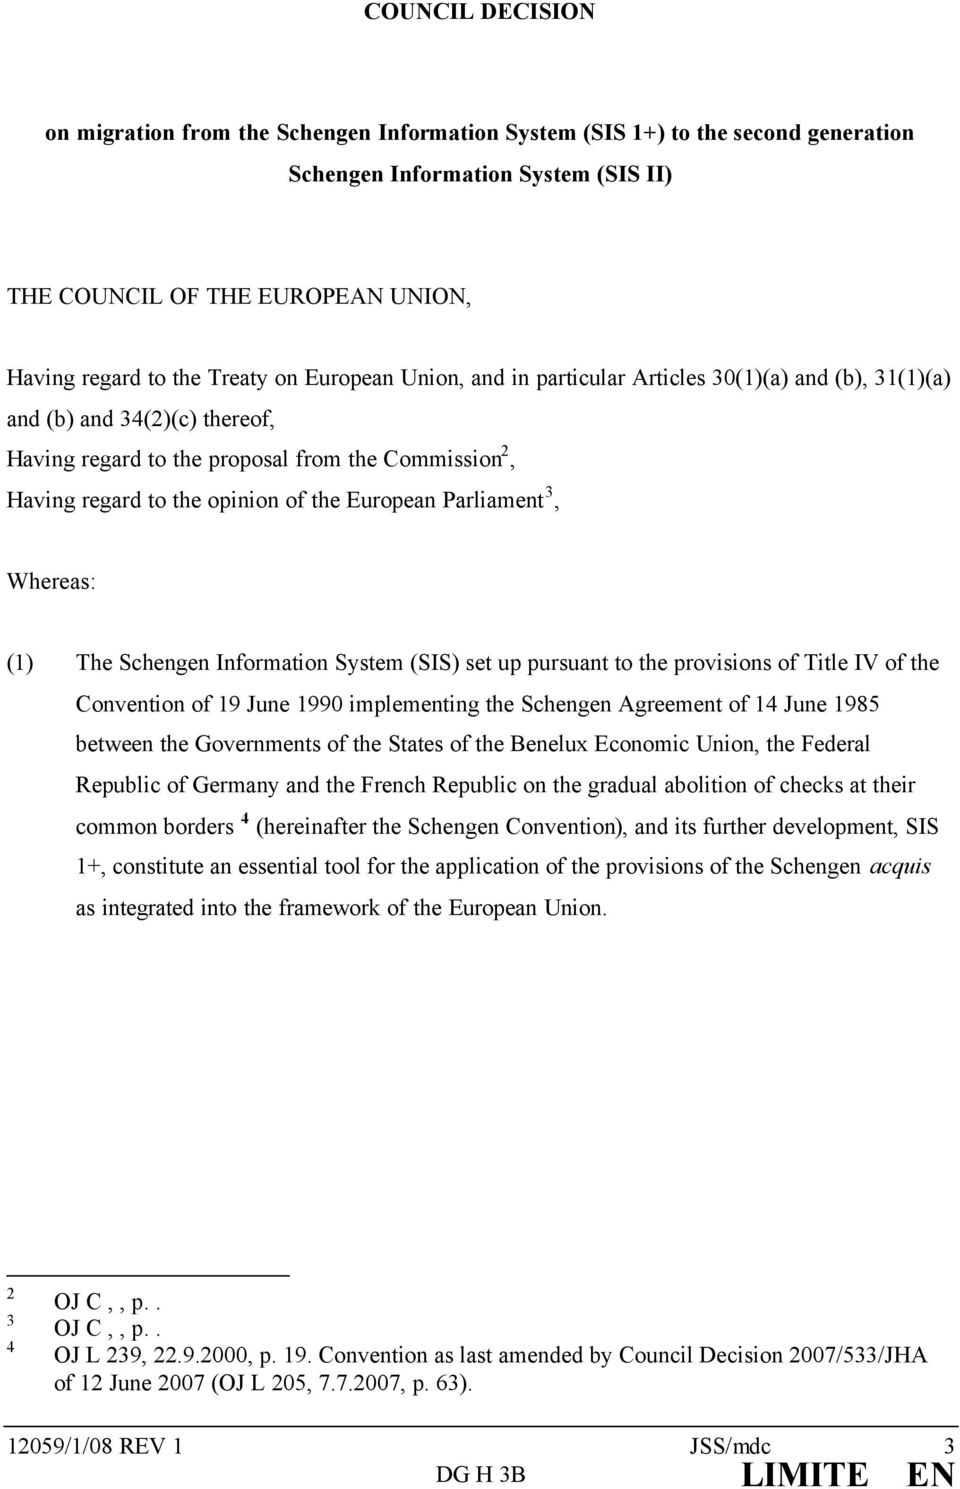 European Parliament 3, Whereas: (1) The Schengen Information System (SIS) set up pursuant to the provisions of Title IV of the Convention of 19 June 1990 implementing the Schengen Agreement of 14